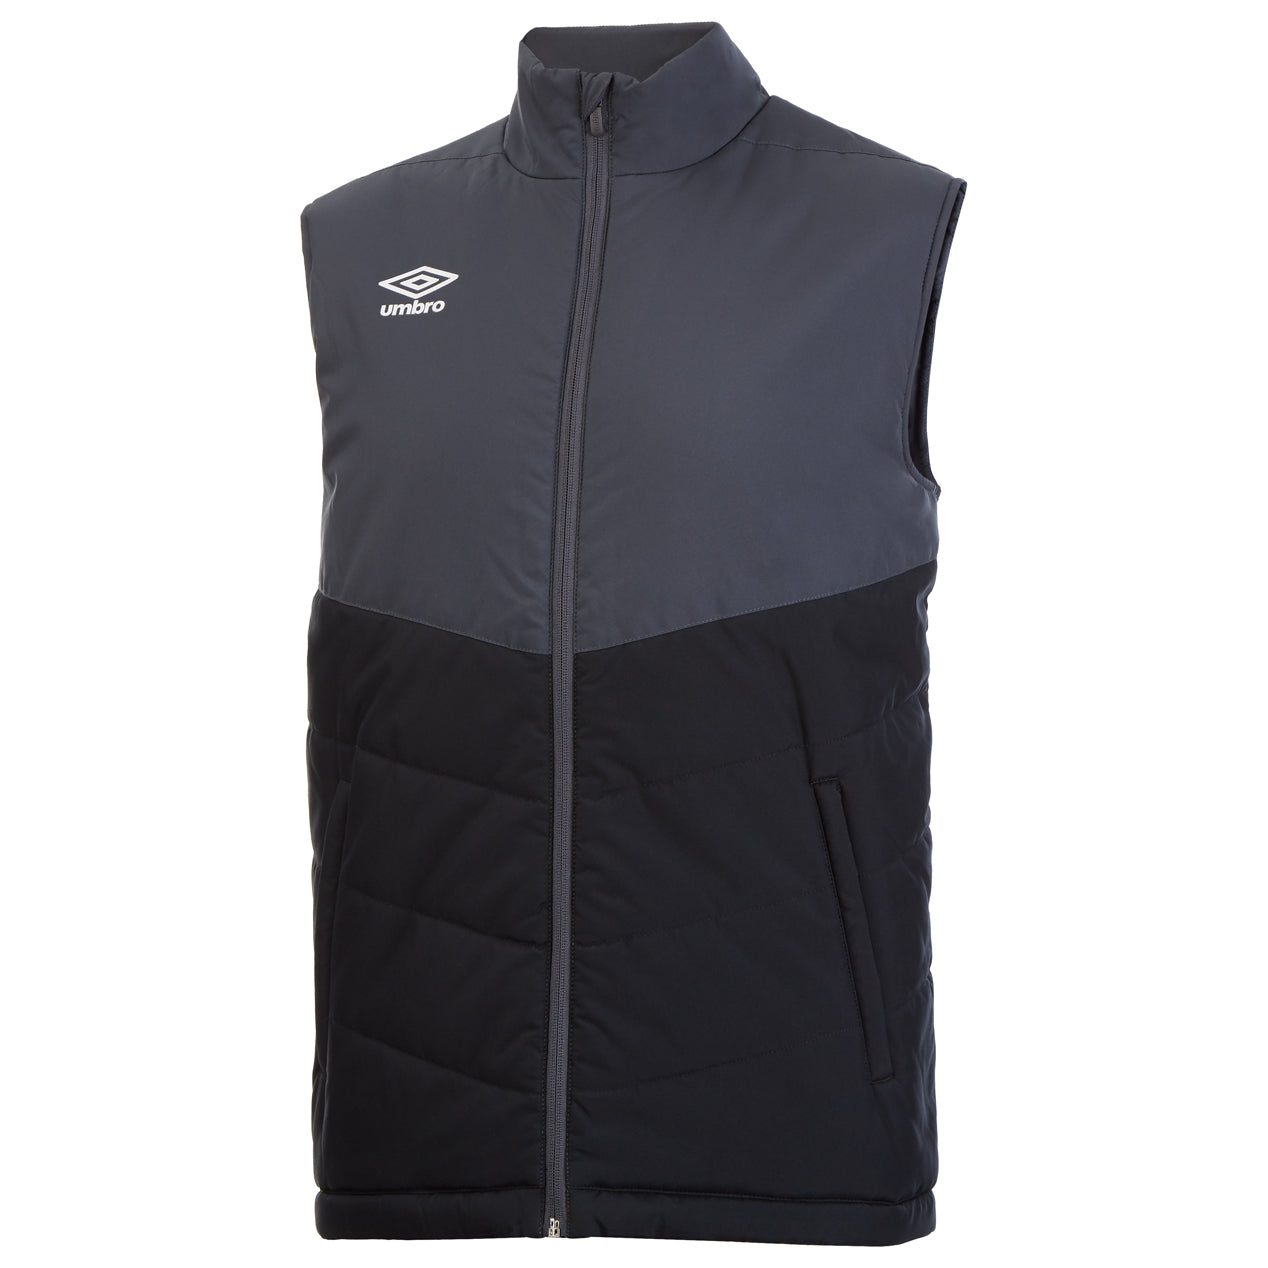 Umbro Gilet - Black/Phantom